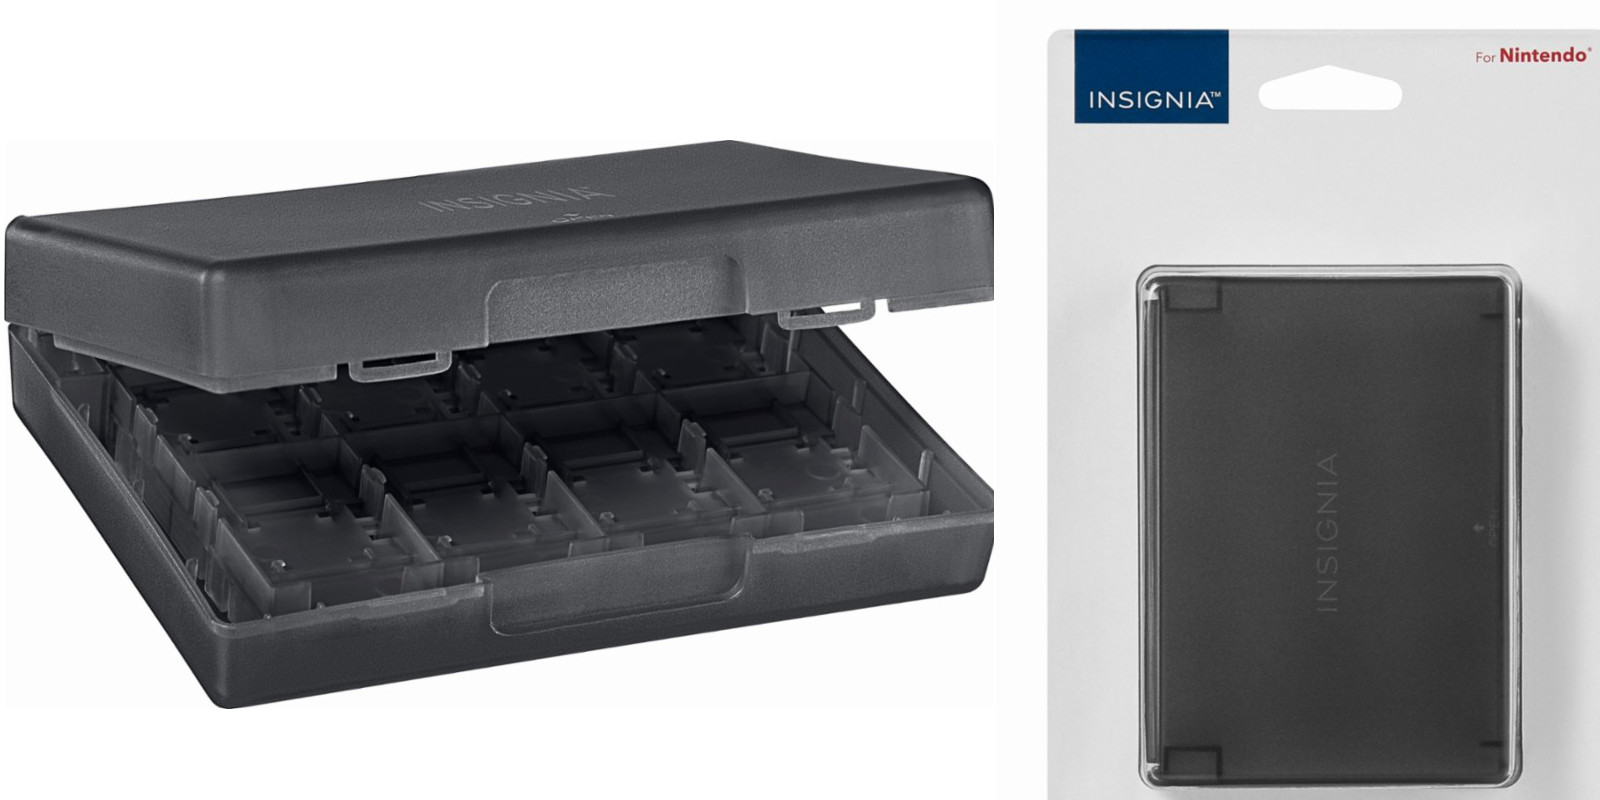 Insignia's 16-Game Nintendo Switch Storage Case is only $3 today (Reg. $10)